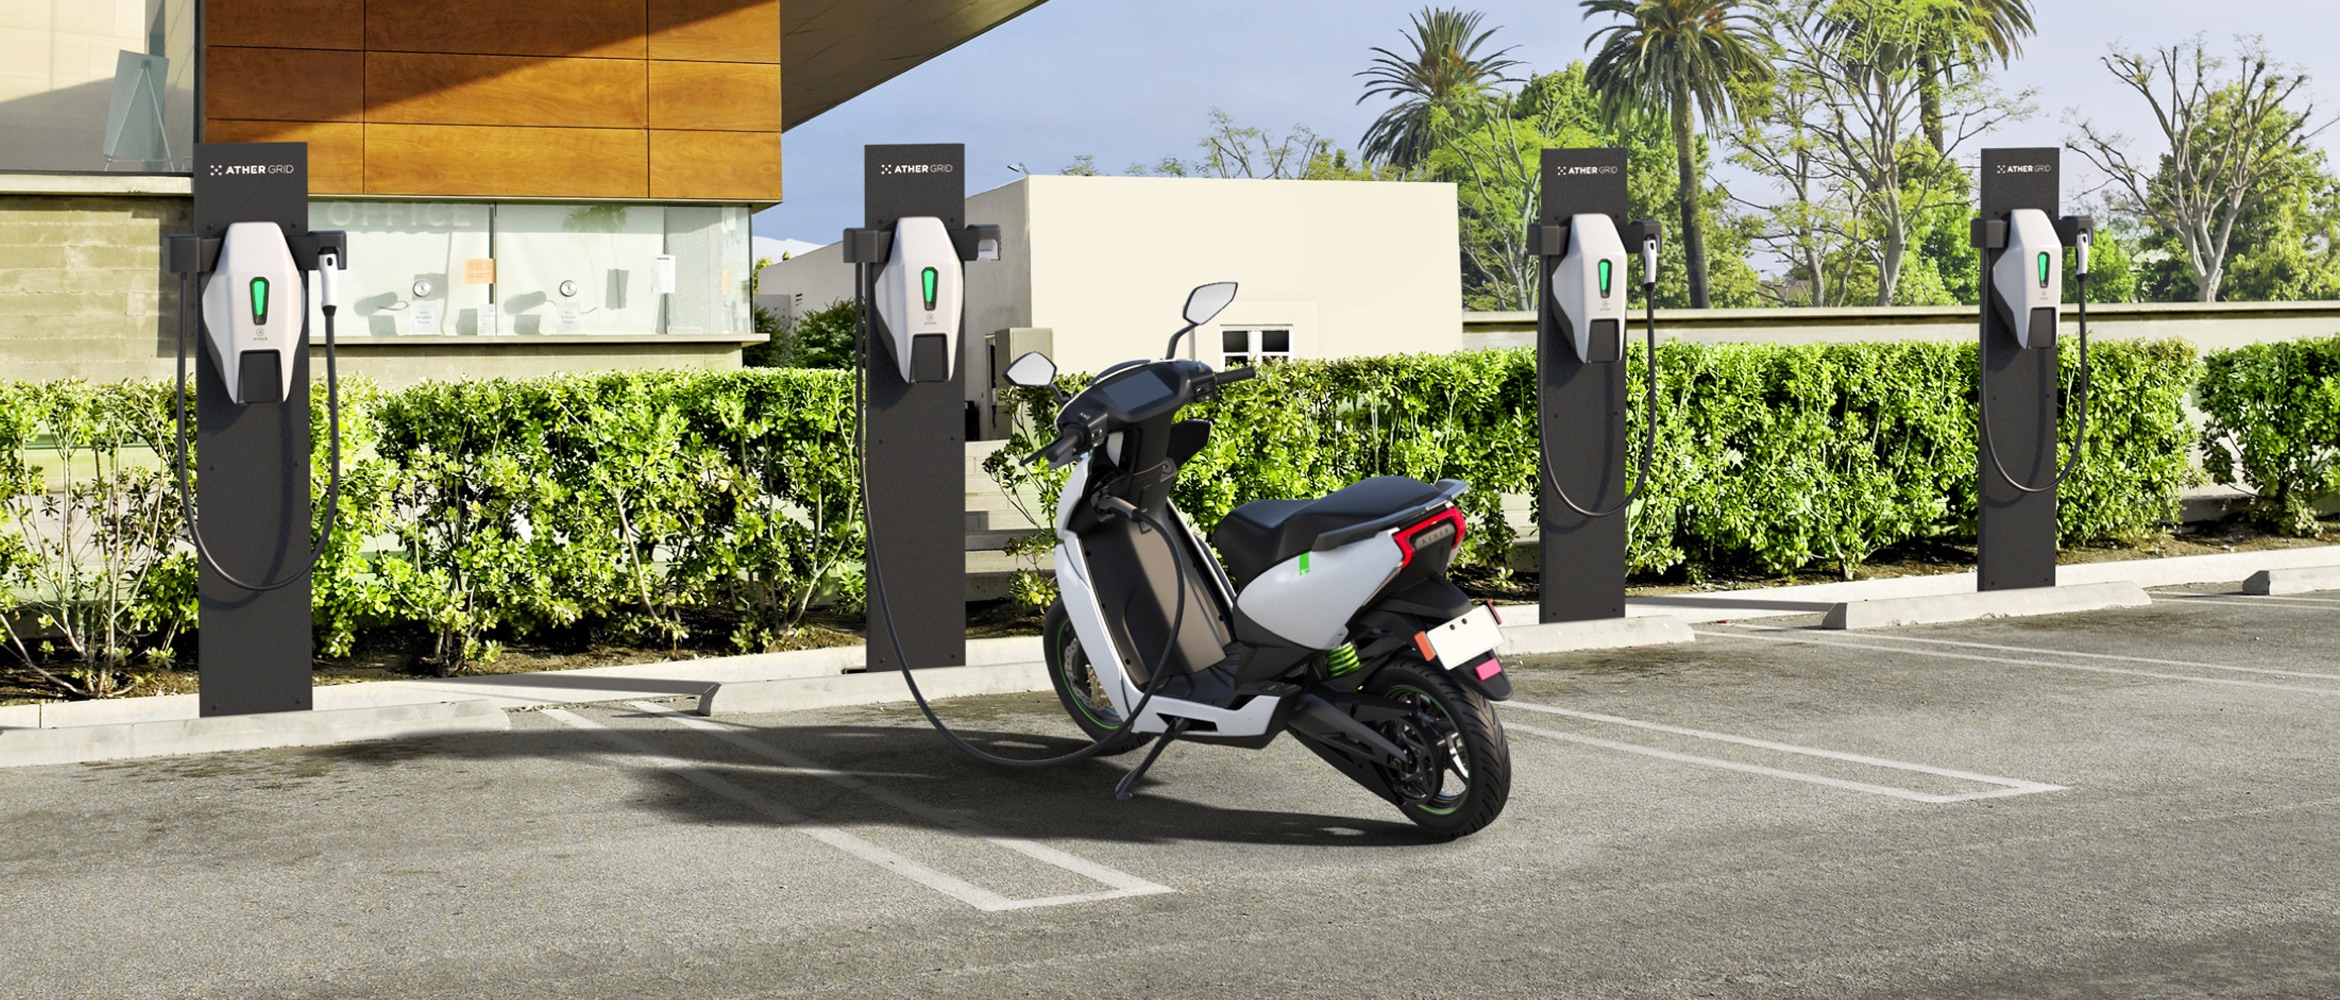 Ather Grid Charging Station